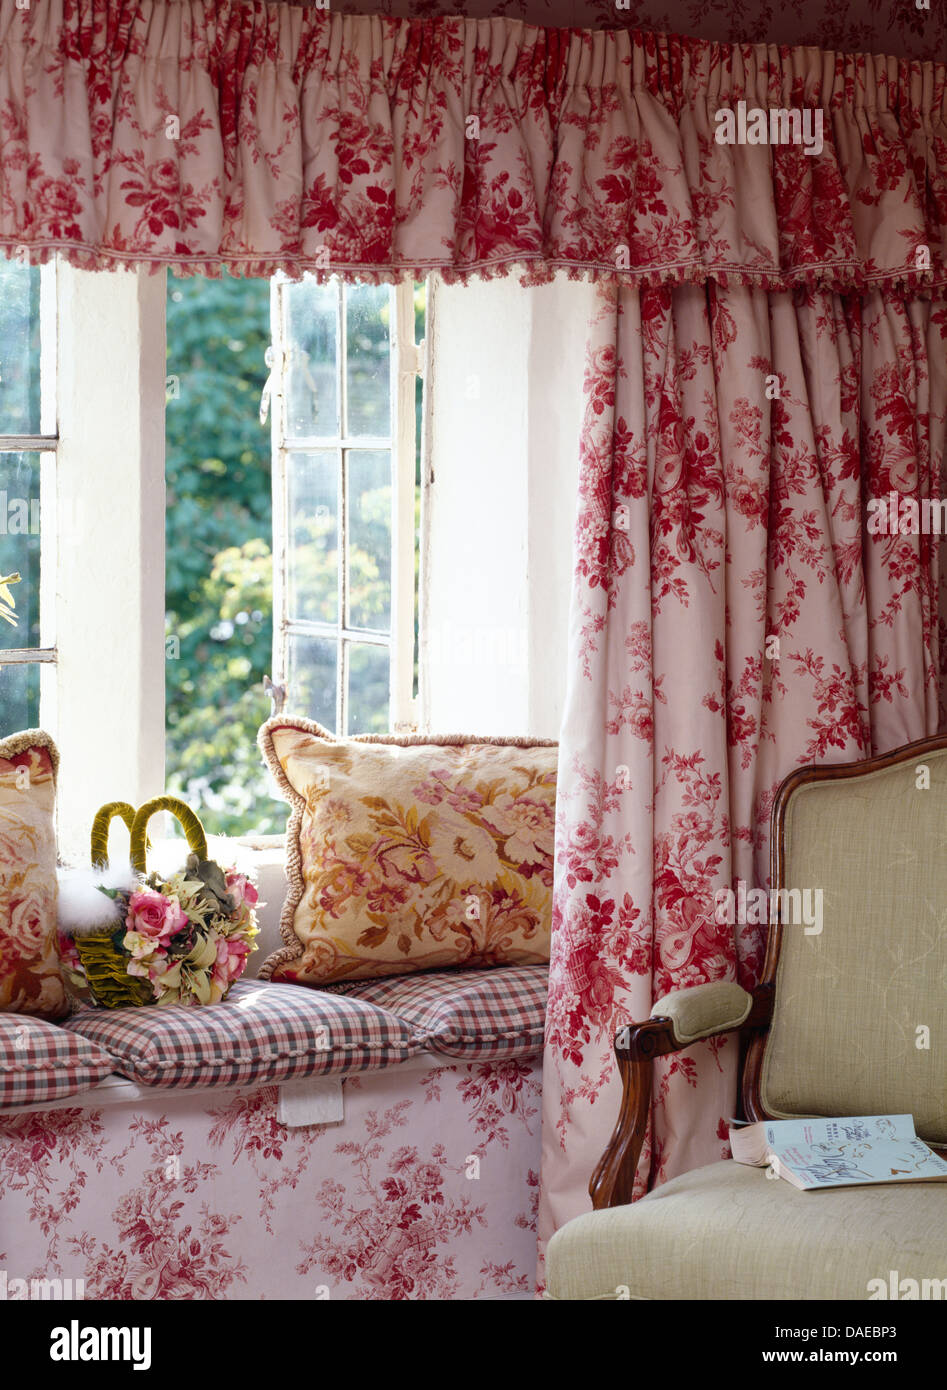 Pink Floral Curtains And Pelmet On Open Window Above Window Seat With Floral  And Checked Cushions In Cottage Living Room